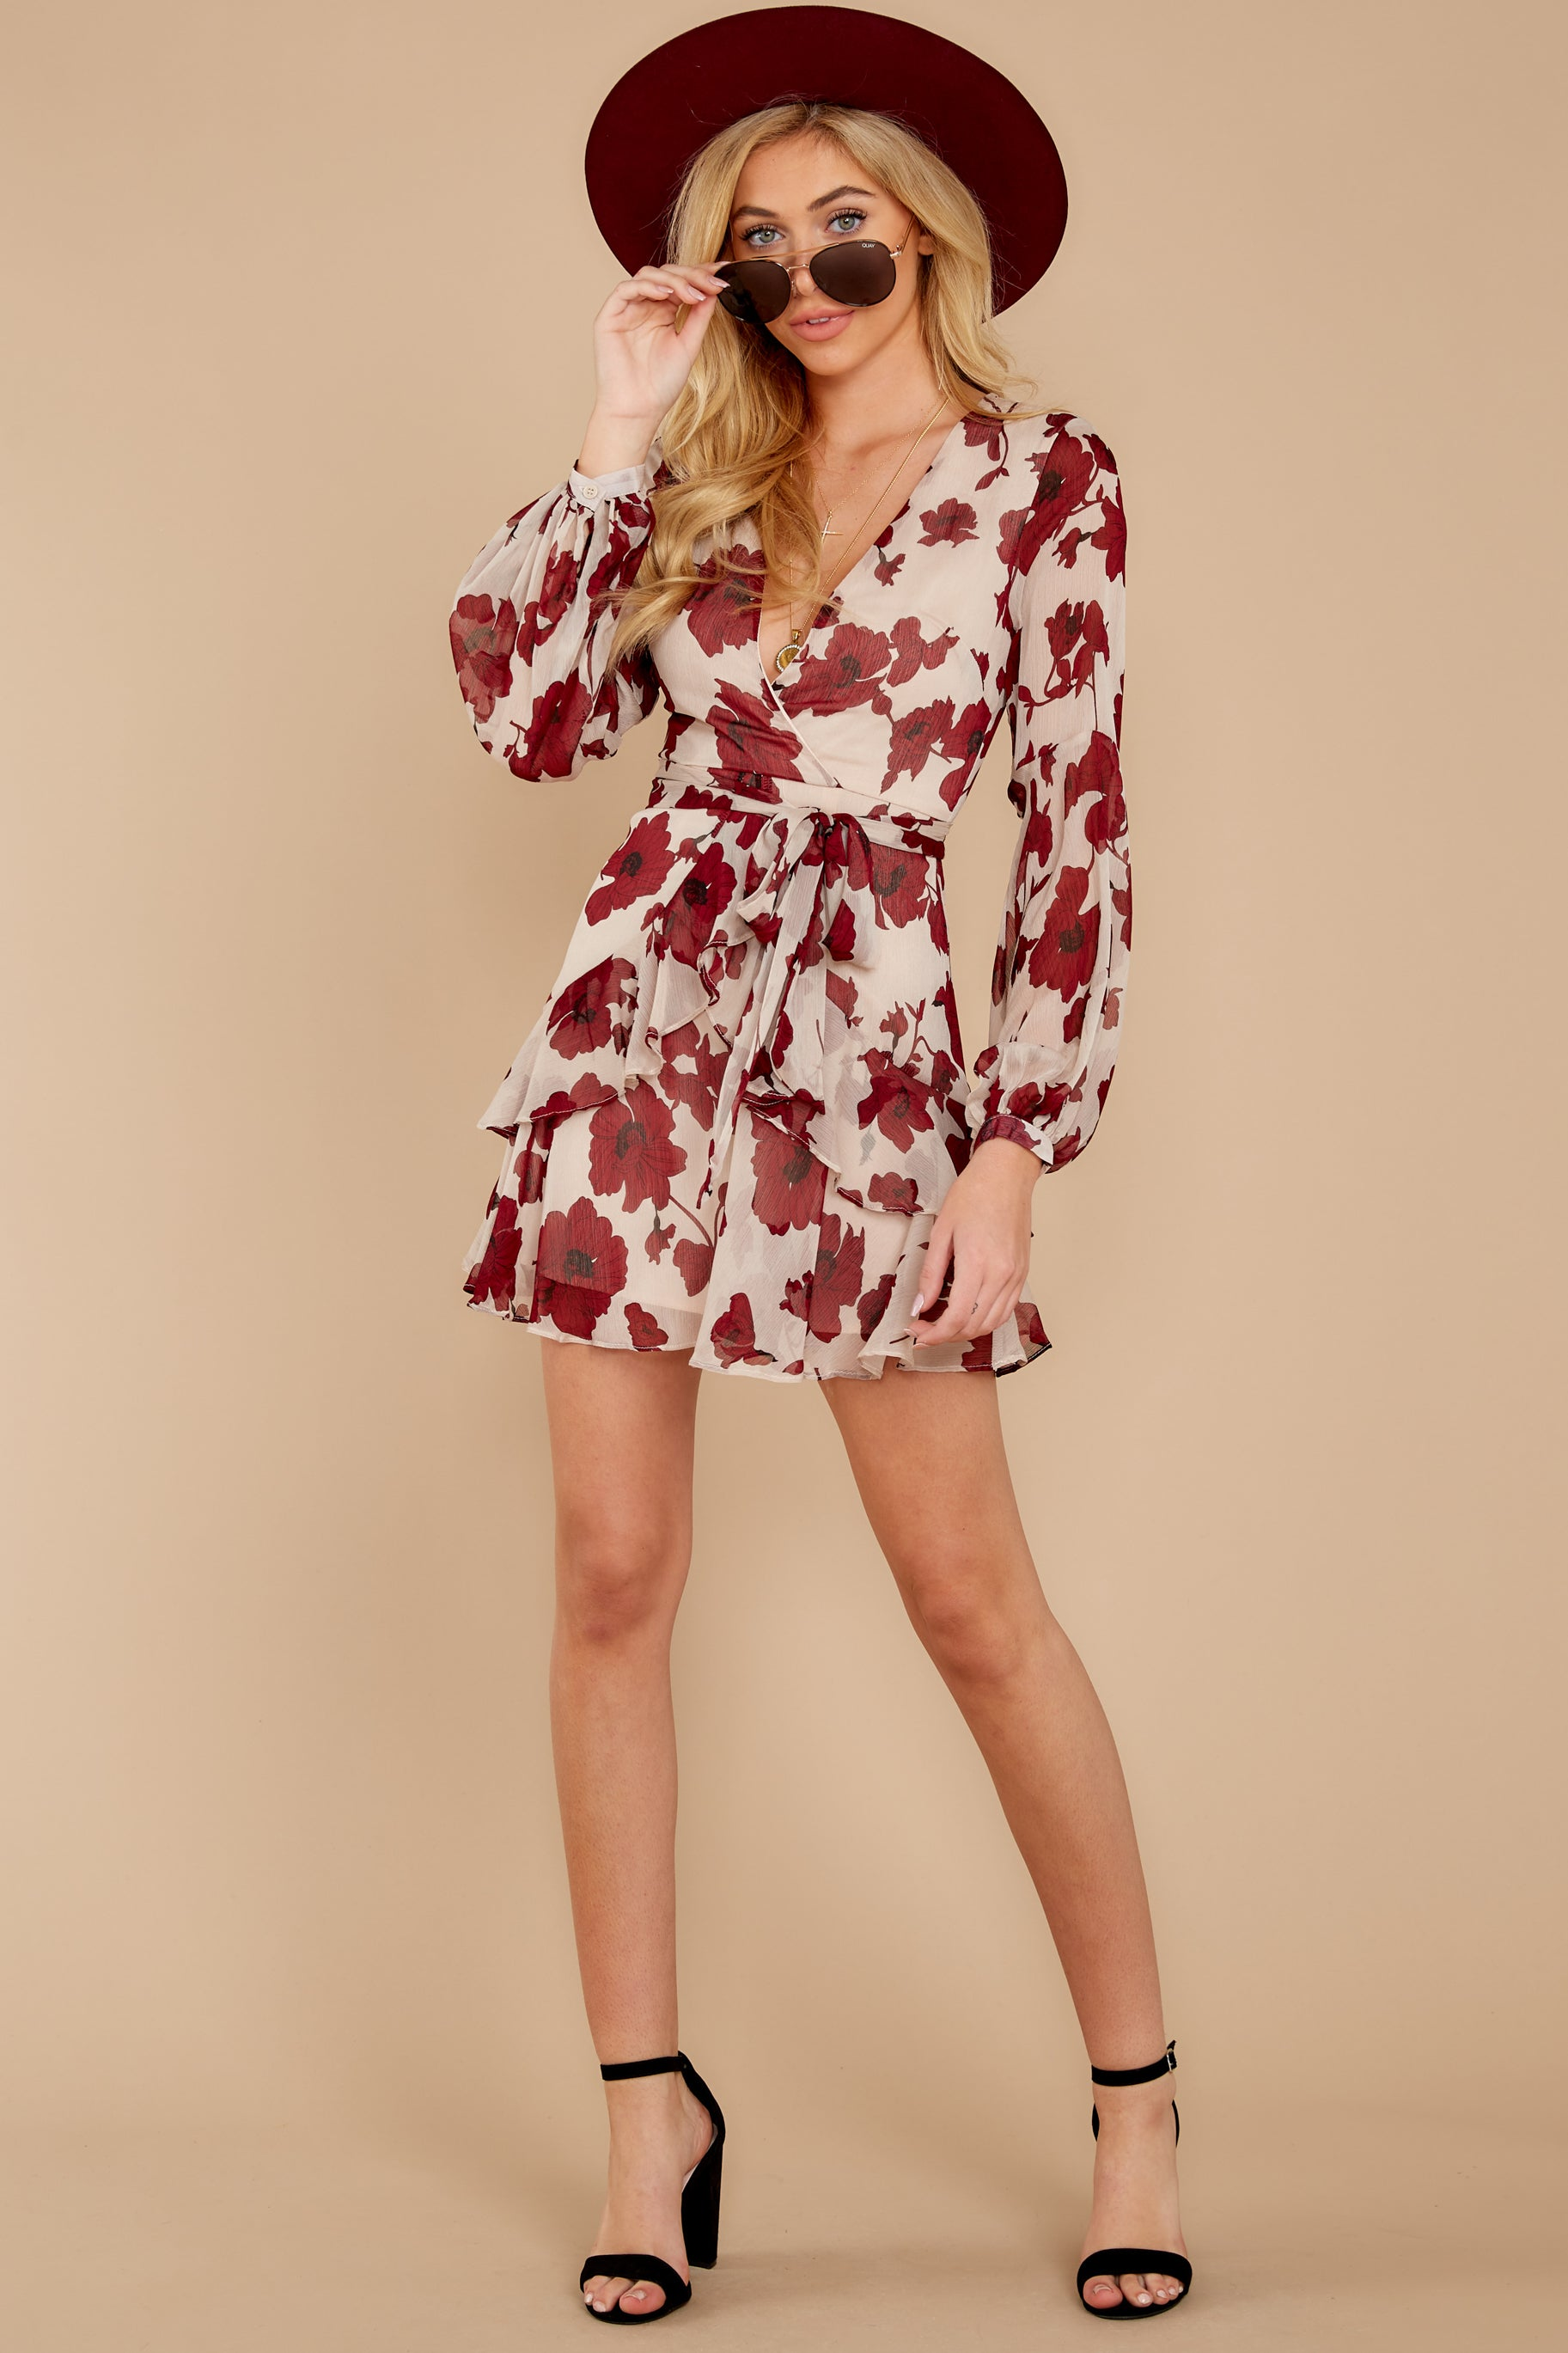 4 Simply Yours Burgundy Floral Print Dress at reddress.com